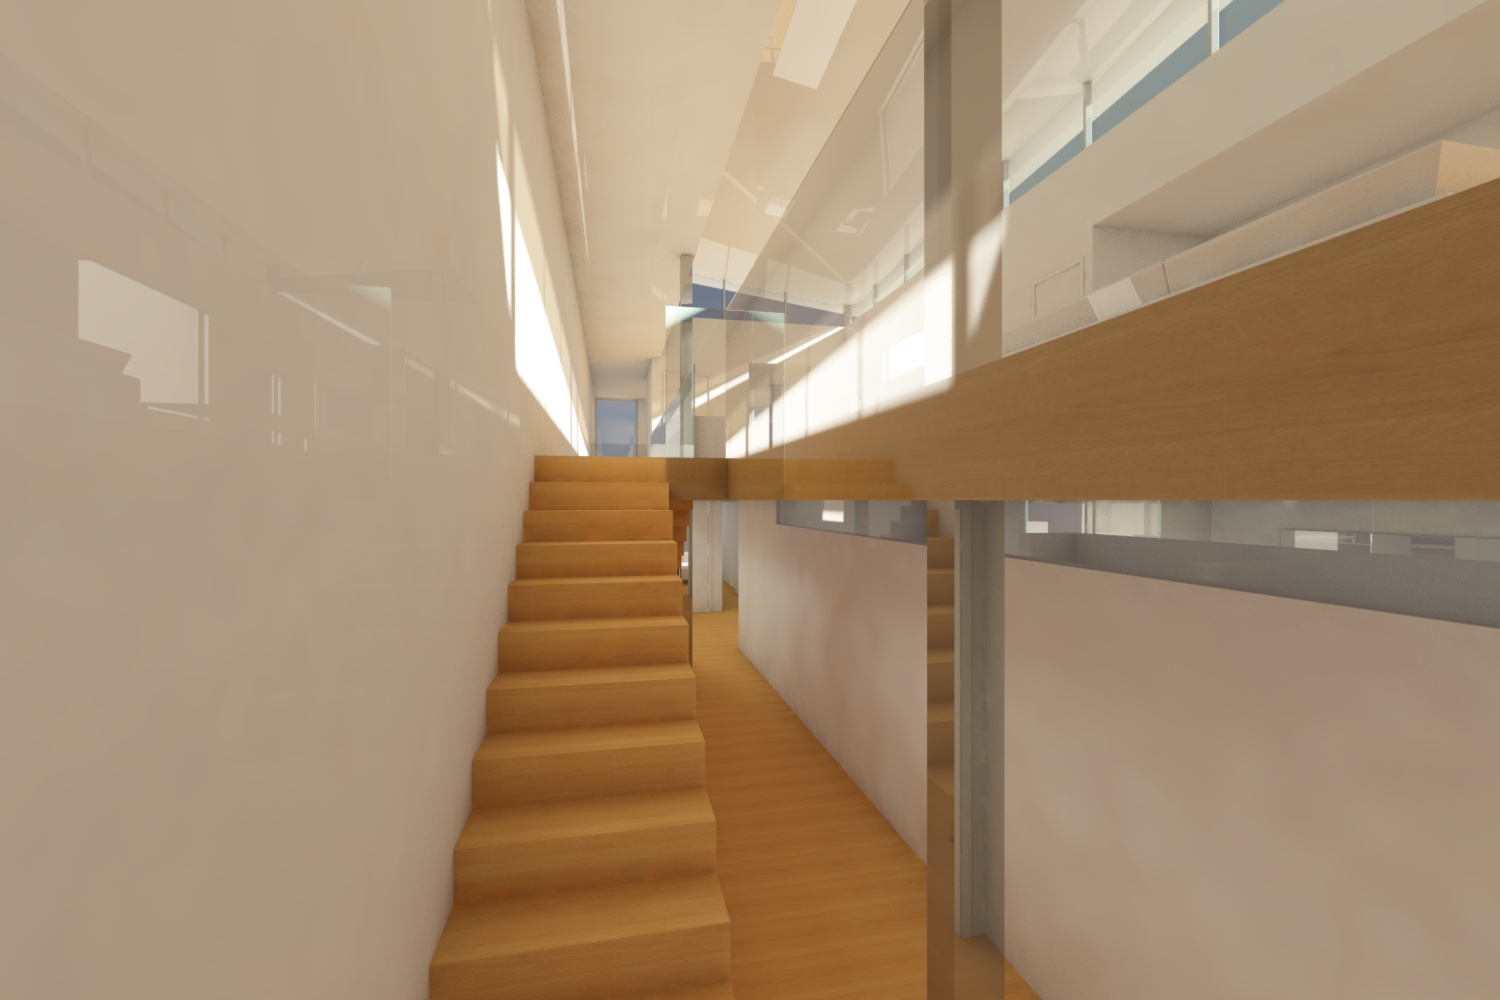 The stairwell is also a lightwell allowing reflected light to illuminate the second floor corridor and adjacent spaces.